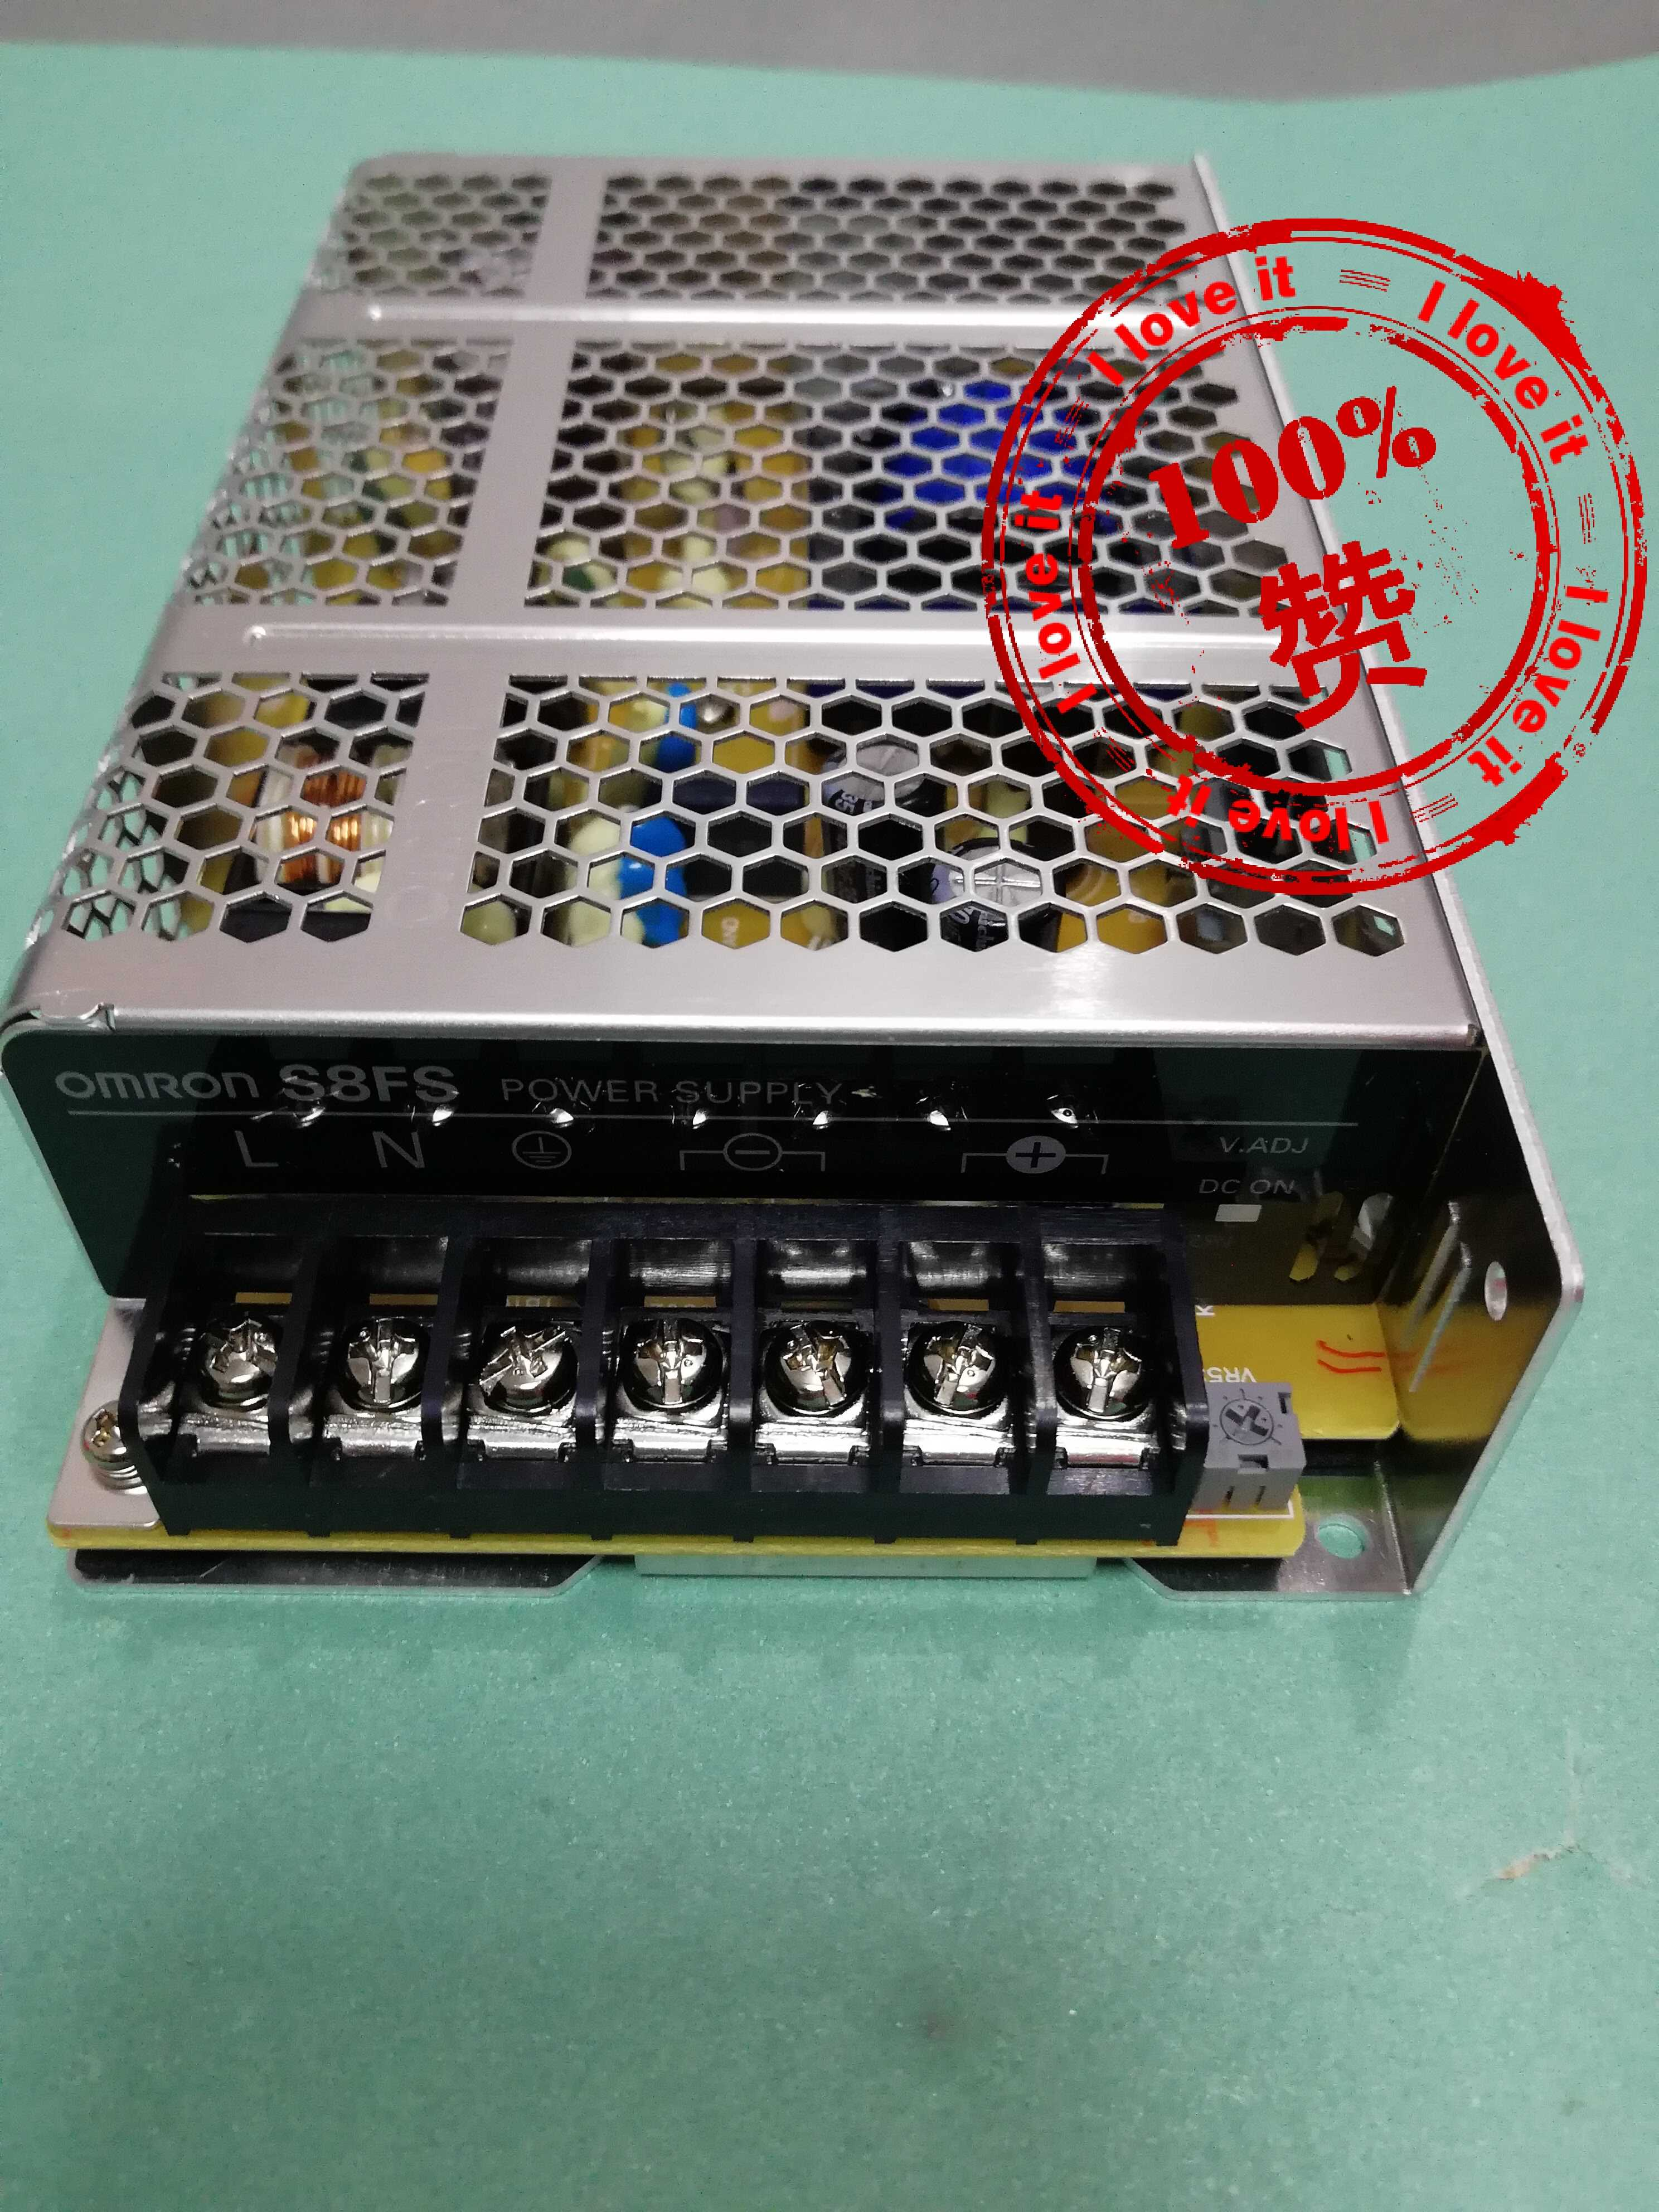 Buy 100% ohmron switching power supply S8FS-C10024 replaces S8JC-Z10024C 100W 4.5A 24V for only 45 USD